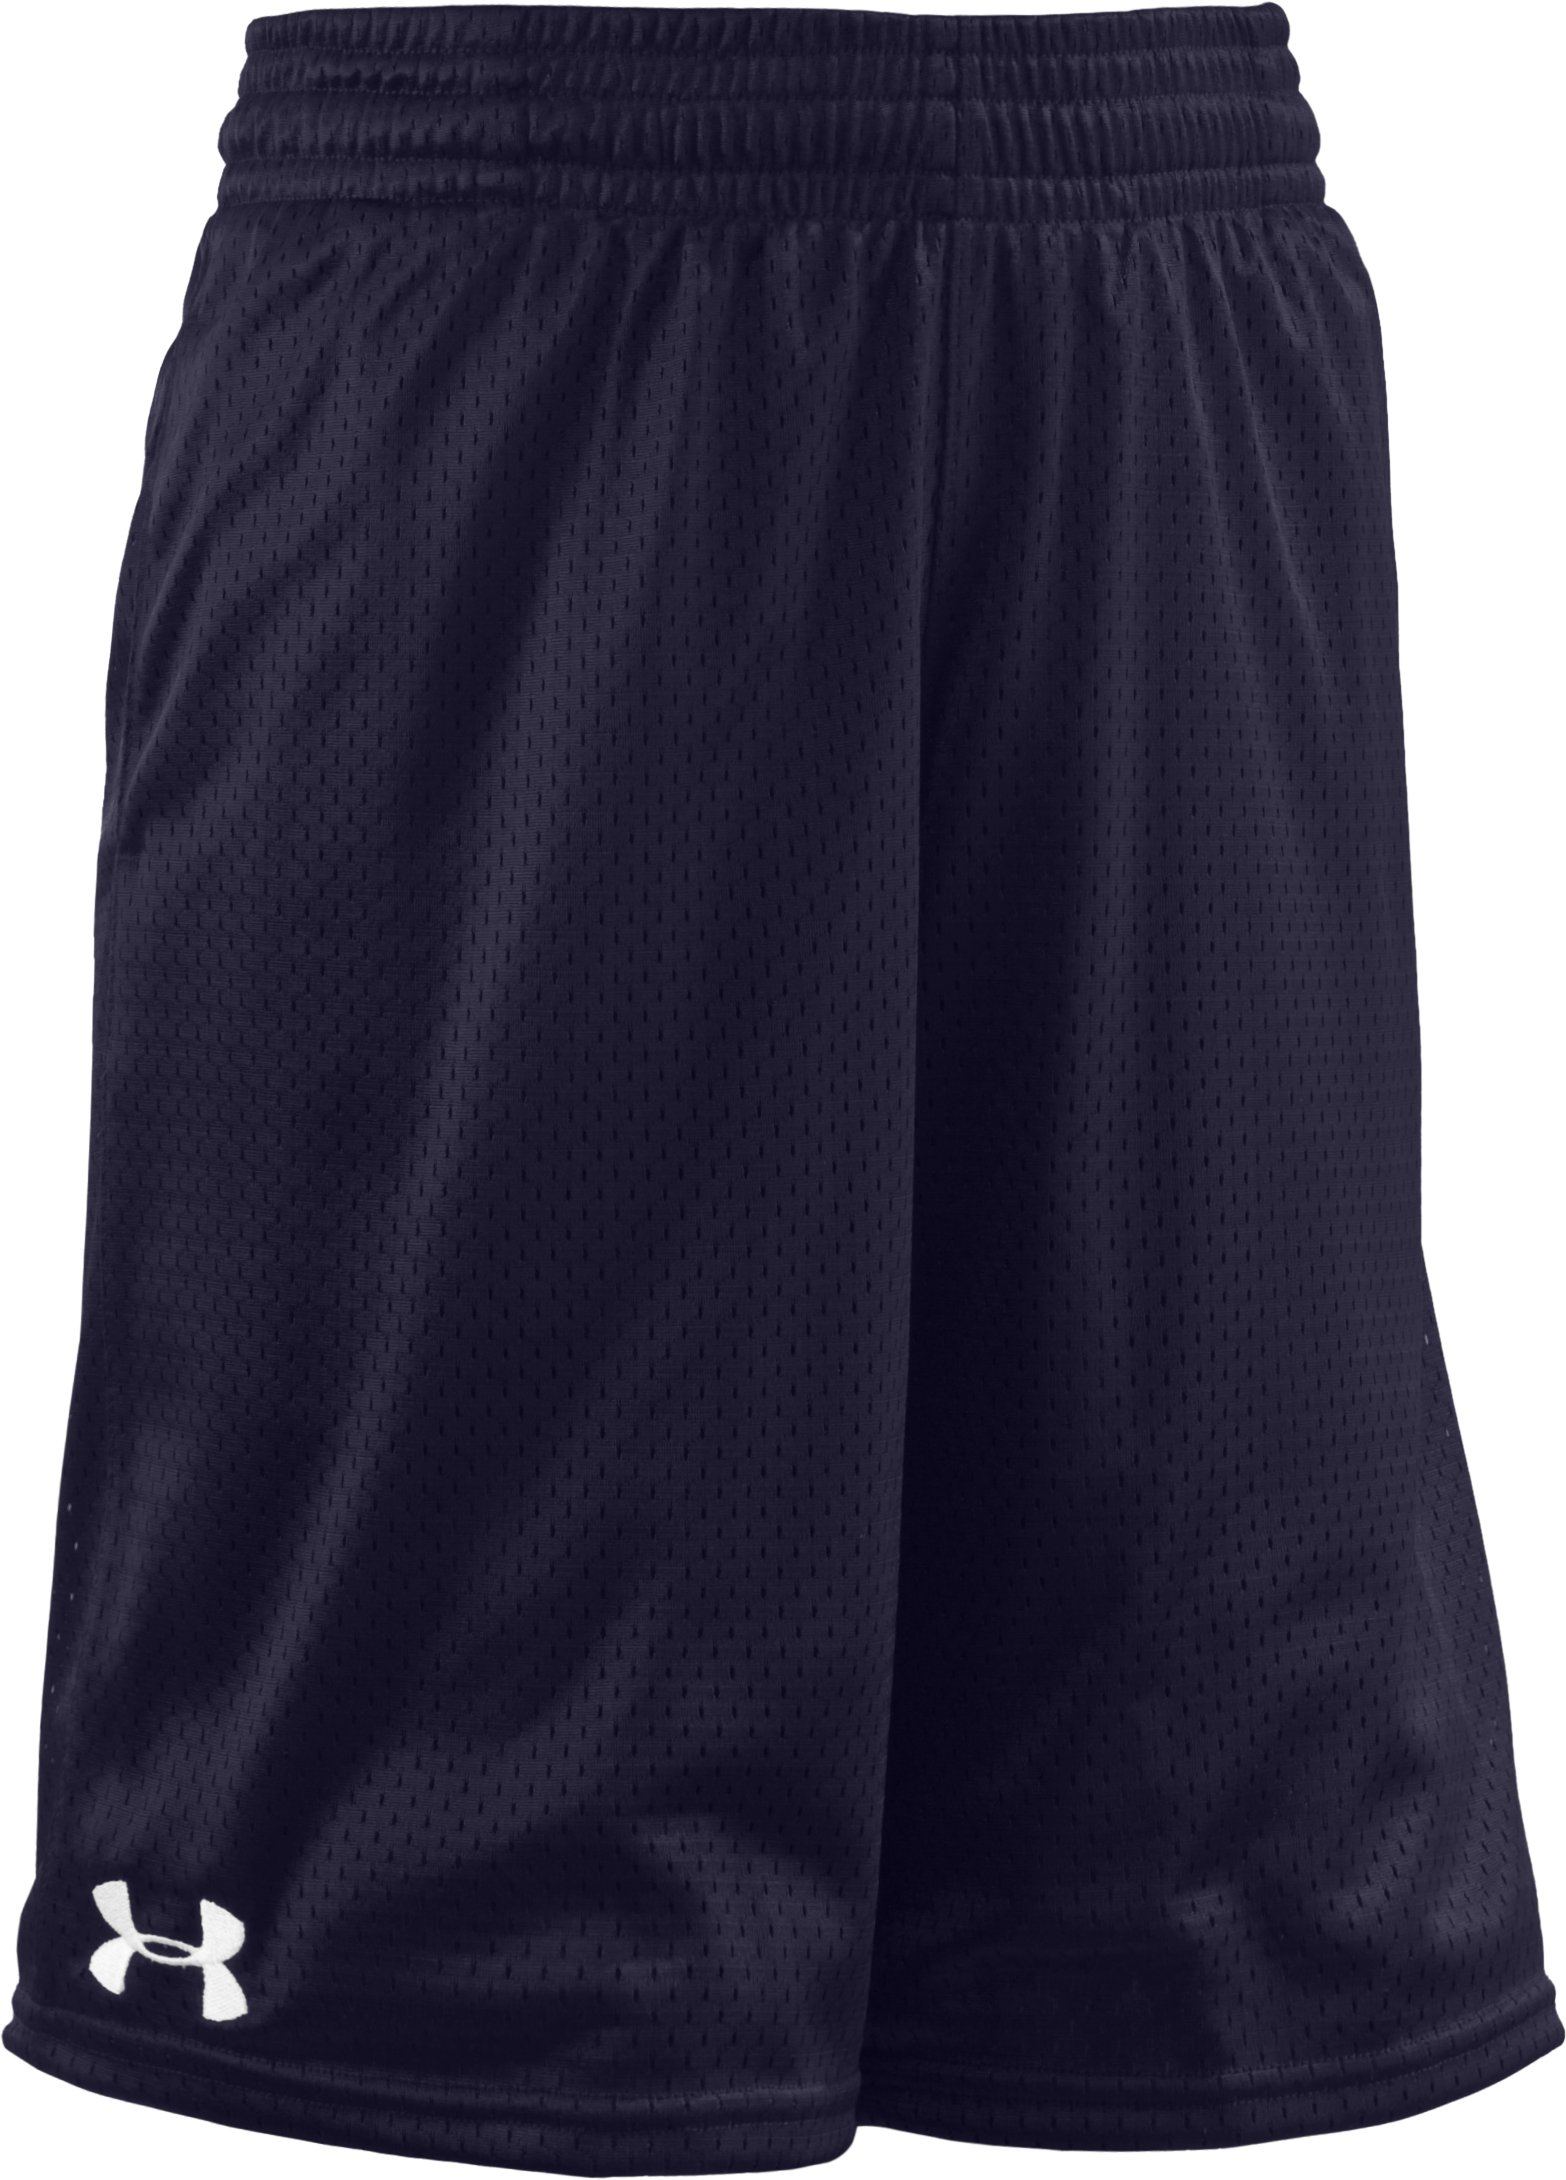 Boys' UA Dominate Mesh Shorts, Midnight Navy, zoomed image